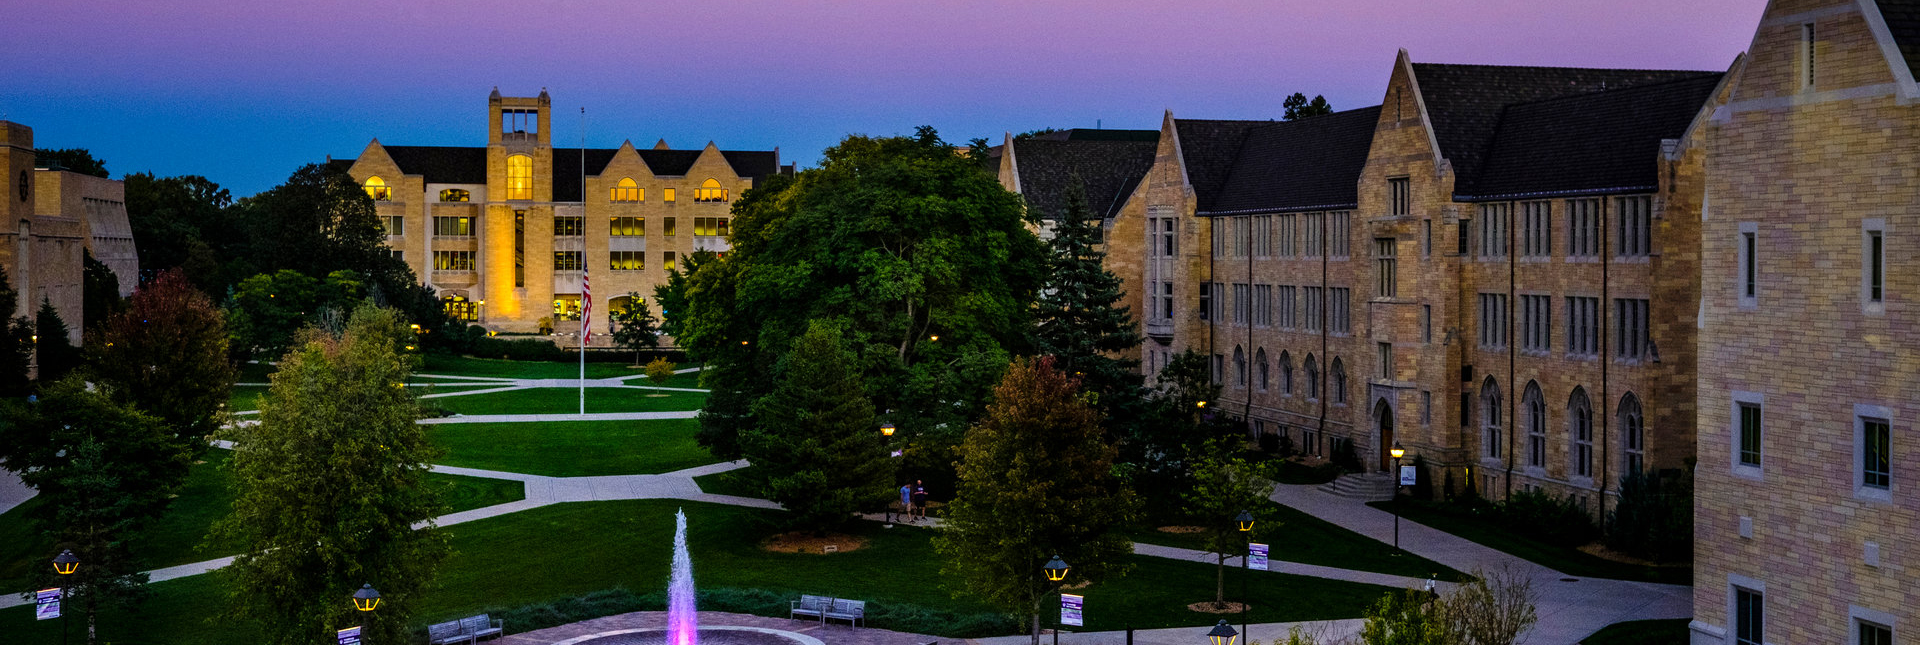 O'Shaughnessy-Frey Library during a purple sunset